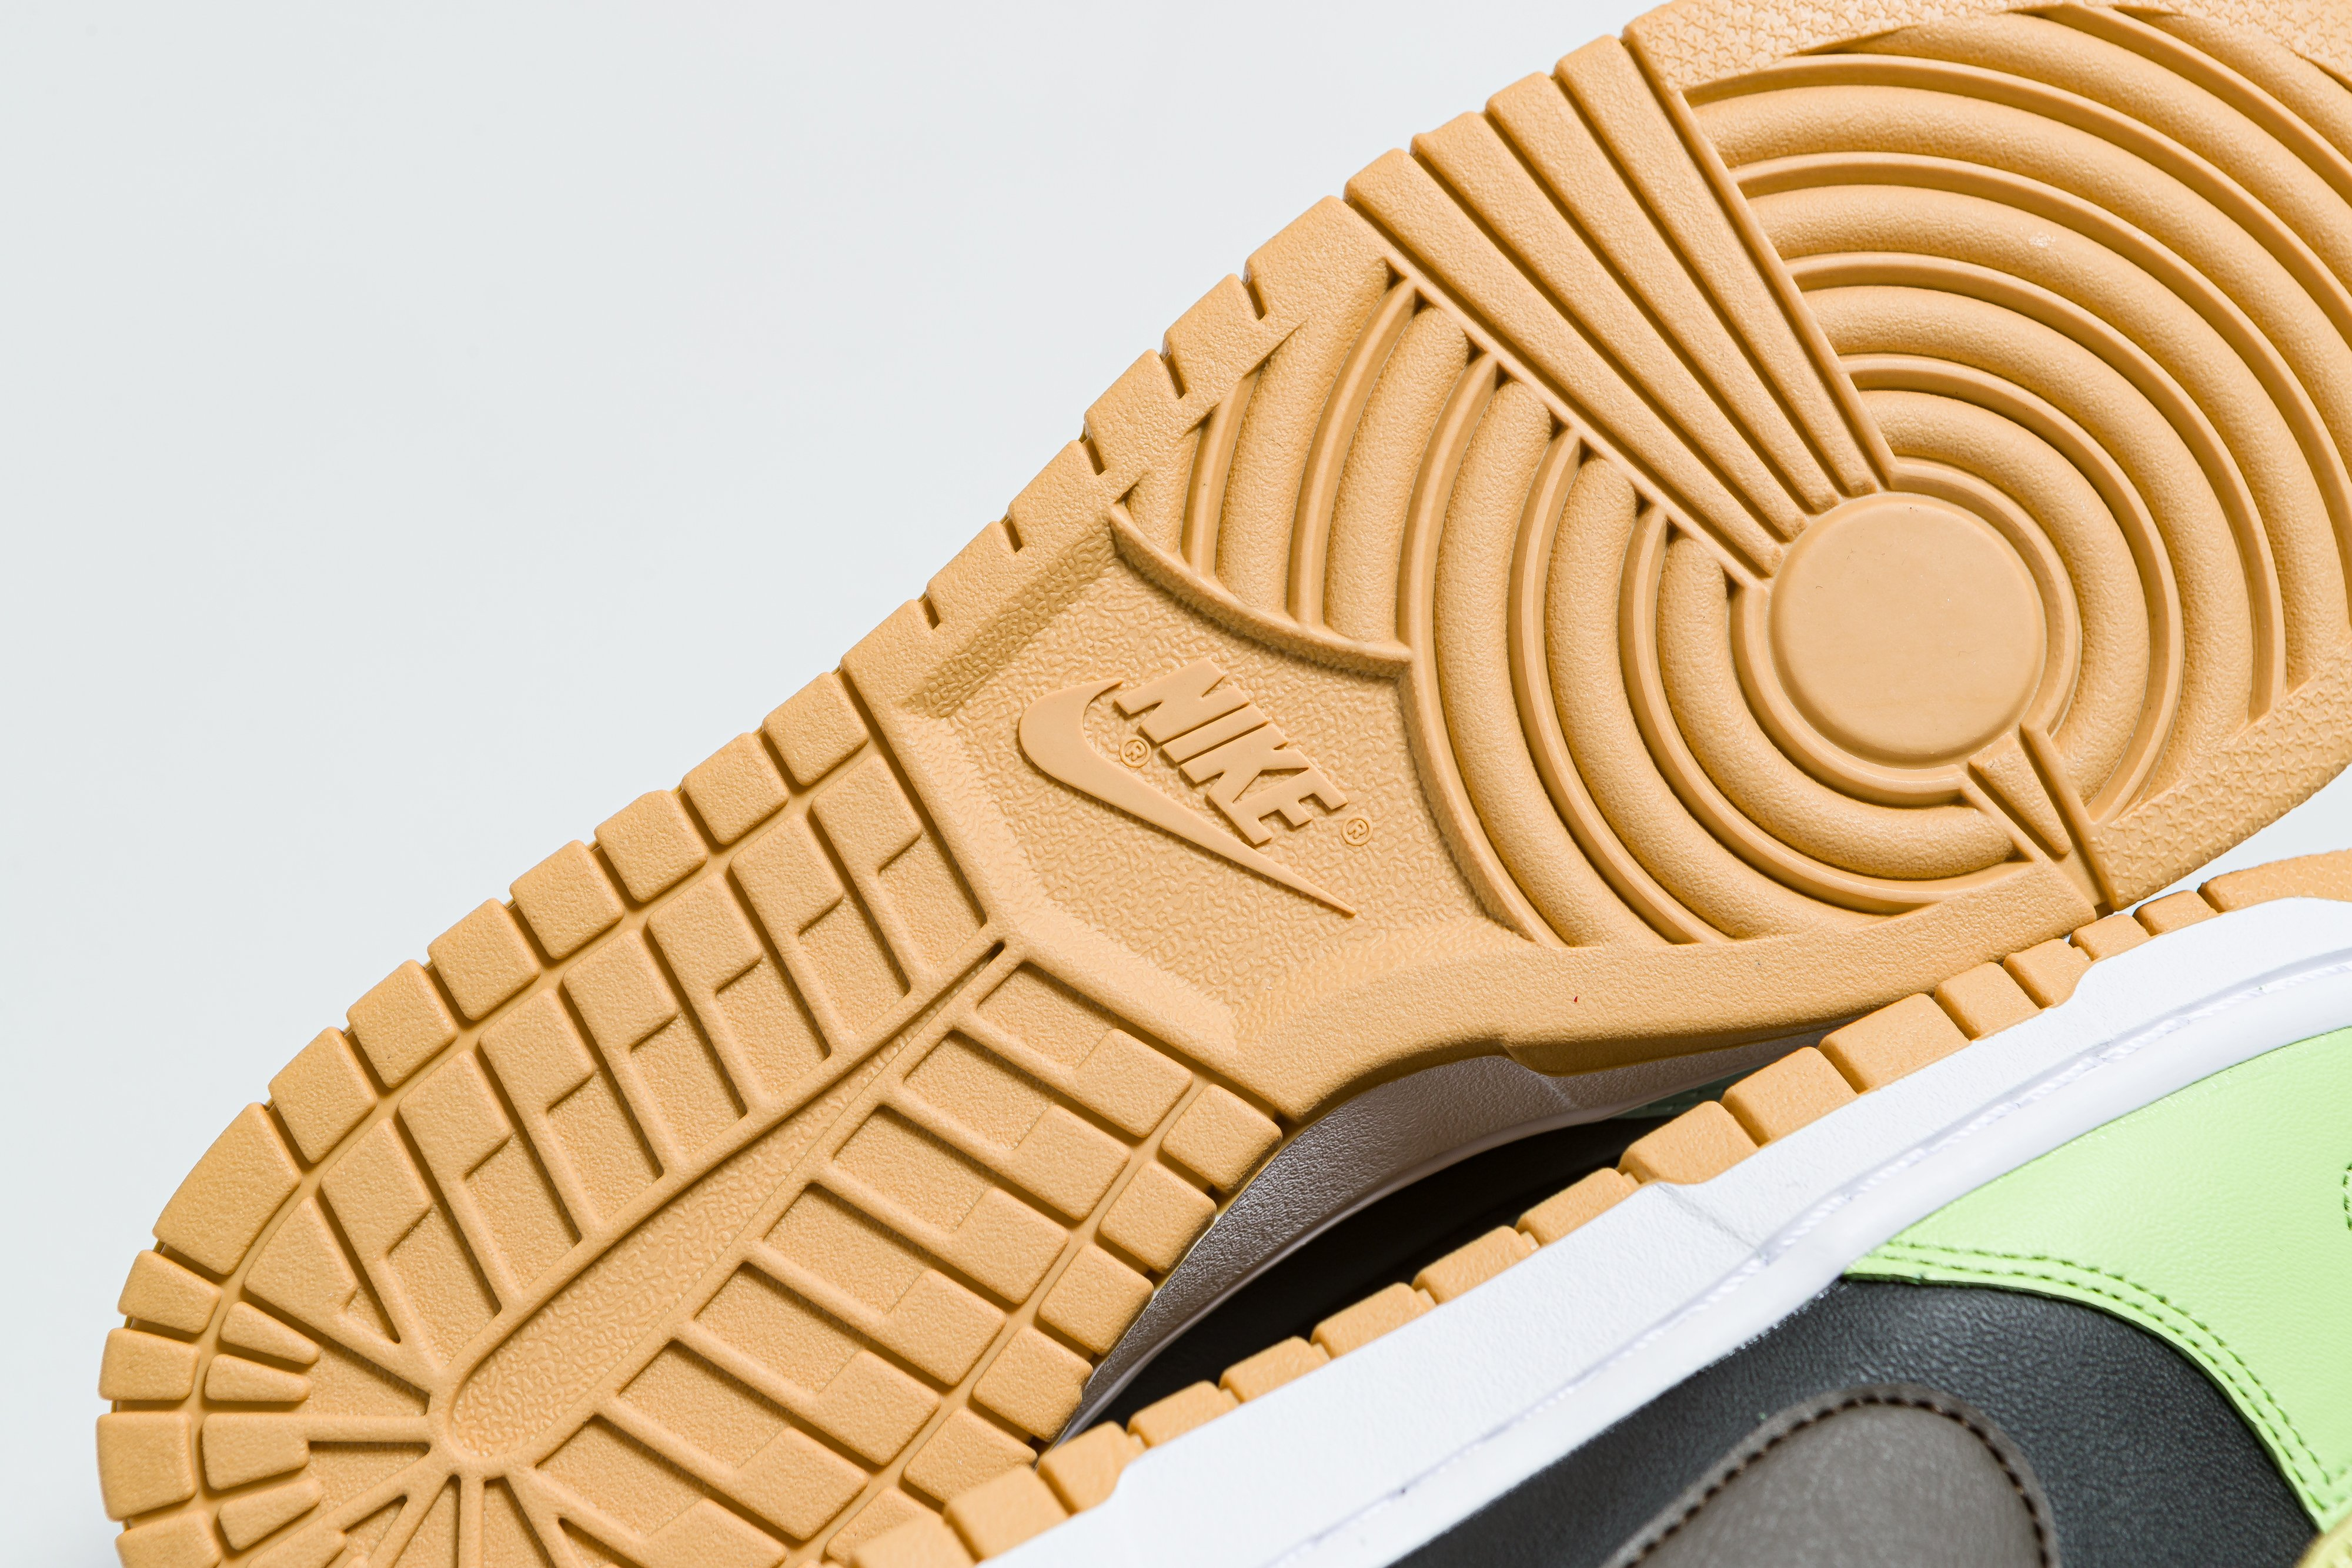 Nike - Dunk Low SE - Black/Dark-Chocolate - Up There